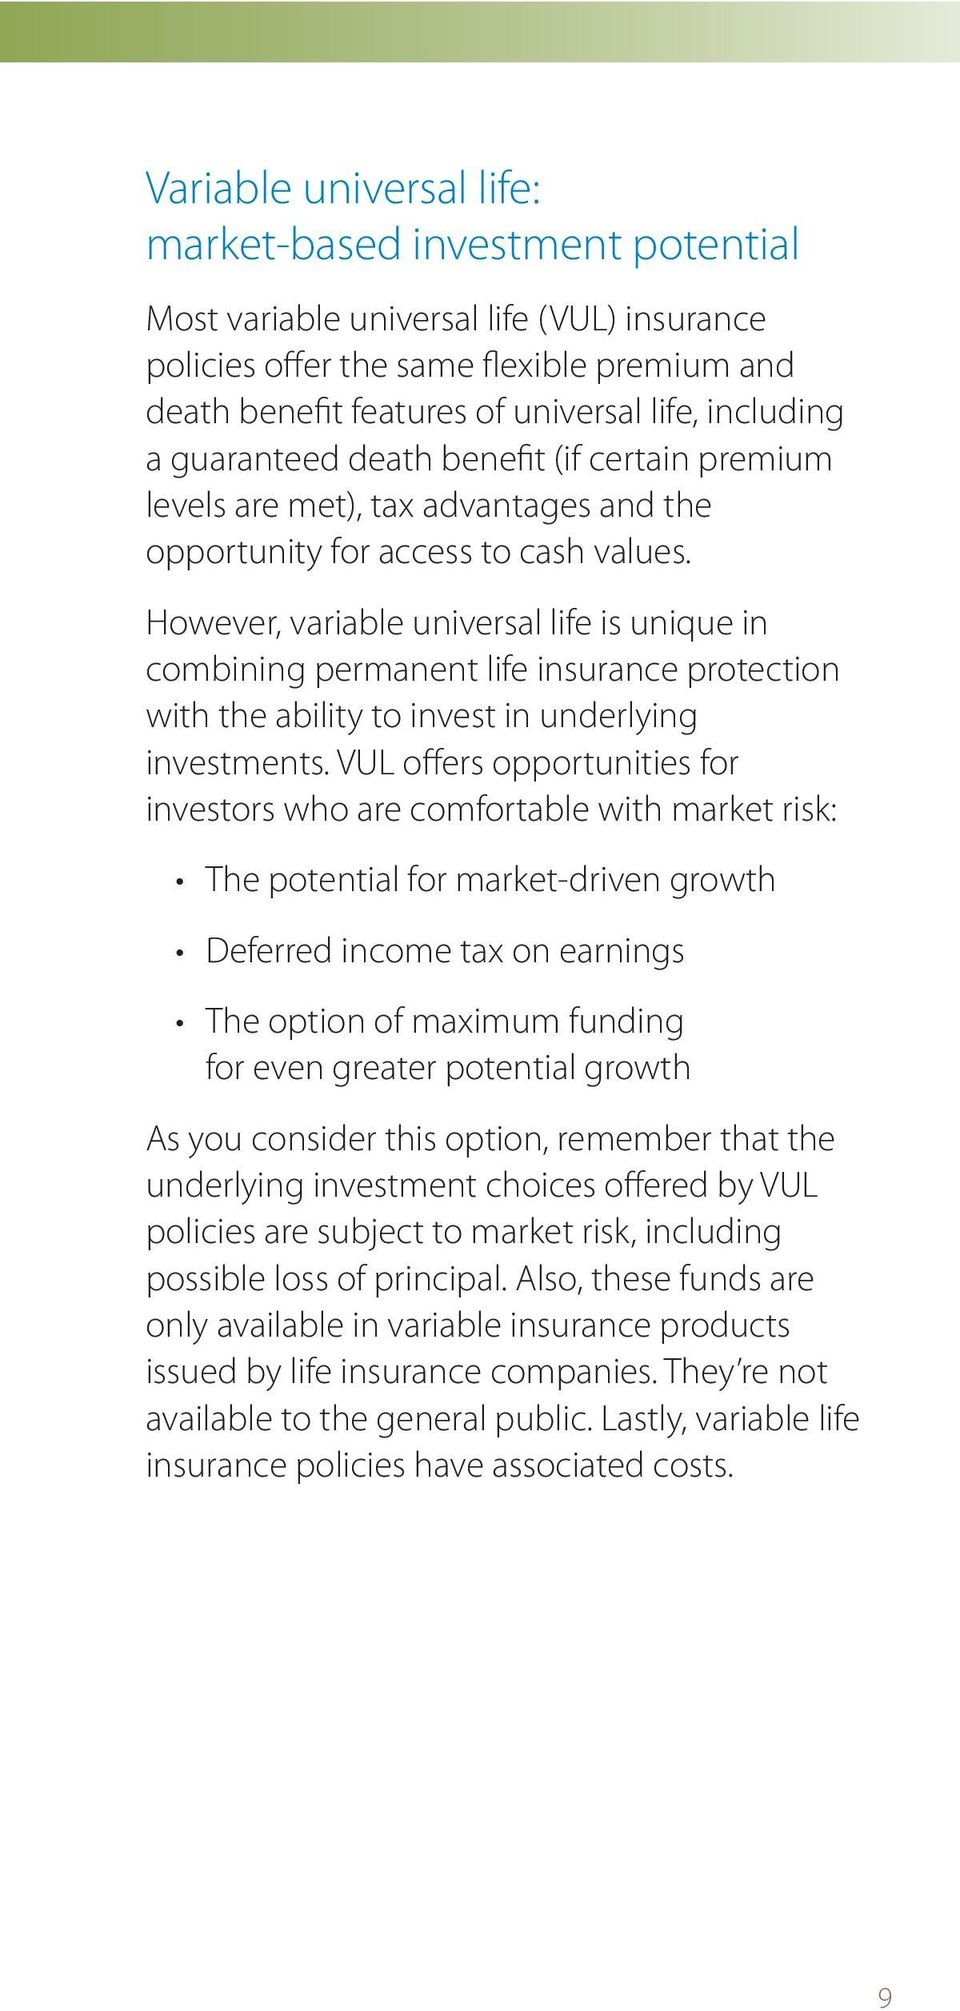 However, variable universal life is unique in combining permanent life insurance protection with the ability to invest in underlying investments.